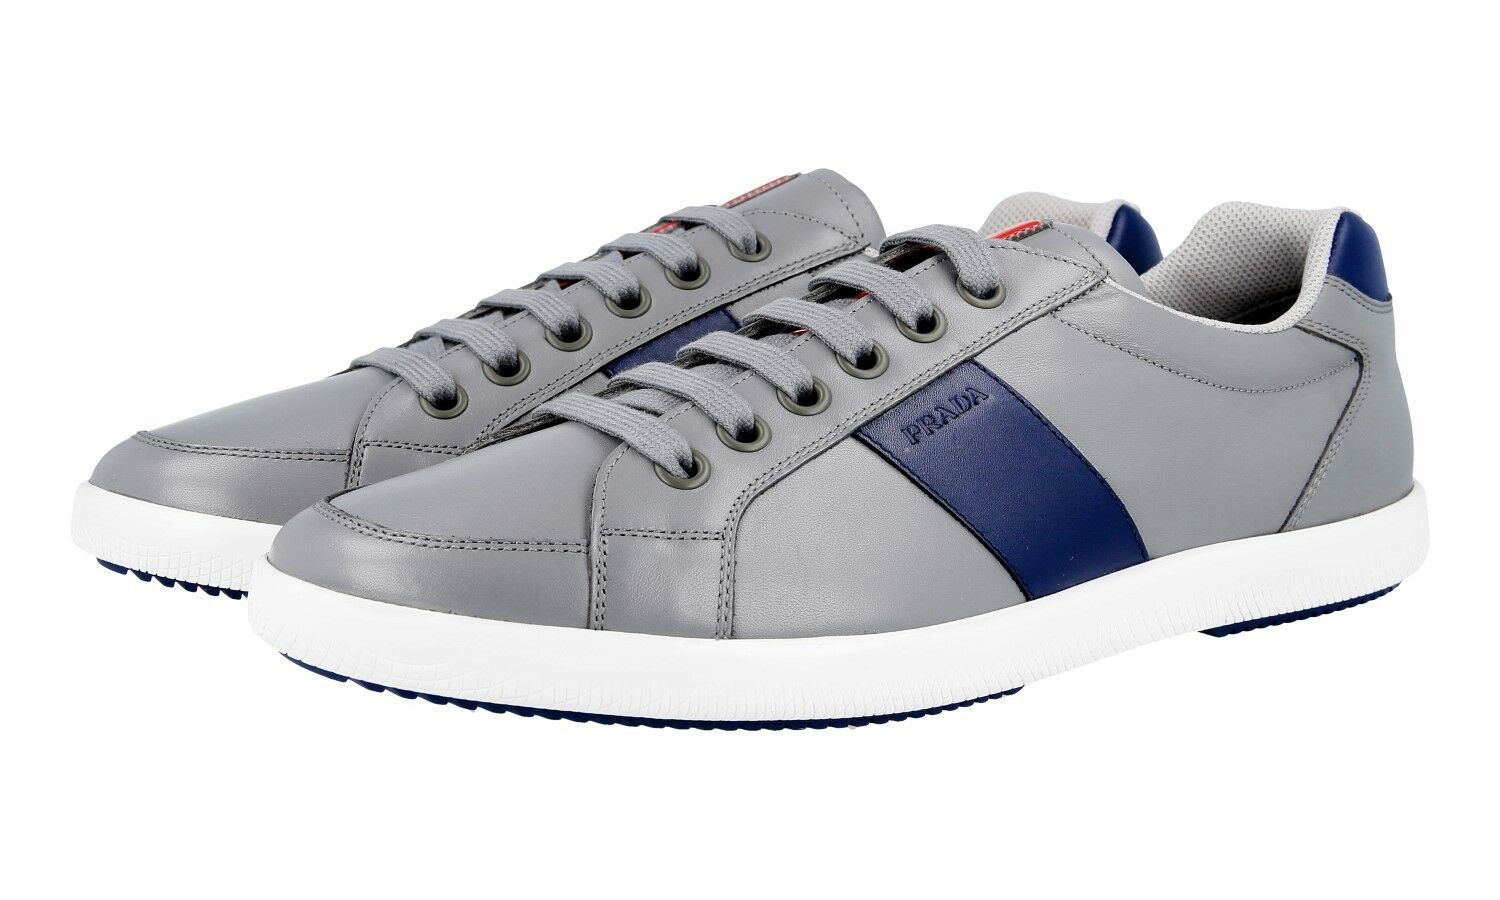 LUXUS PRADA SNEAKER SCHUHE 4E2845 grey blue NEU NEW 9,5 43,5 44